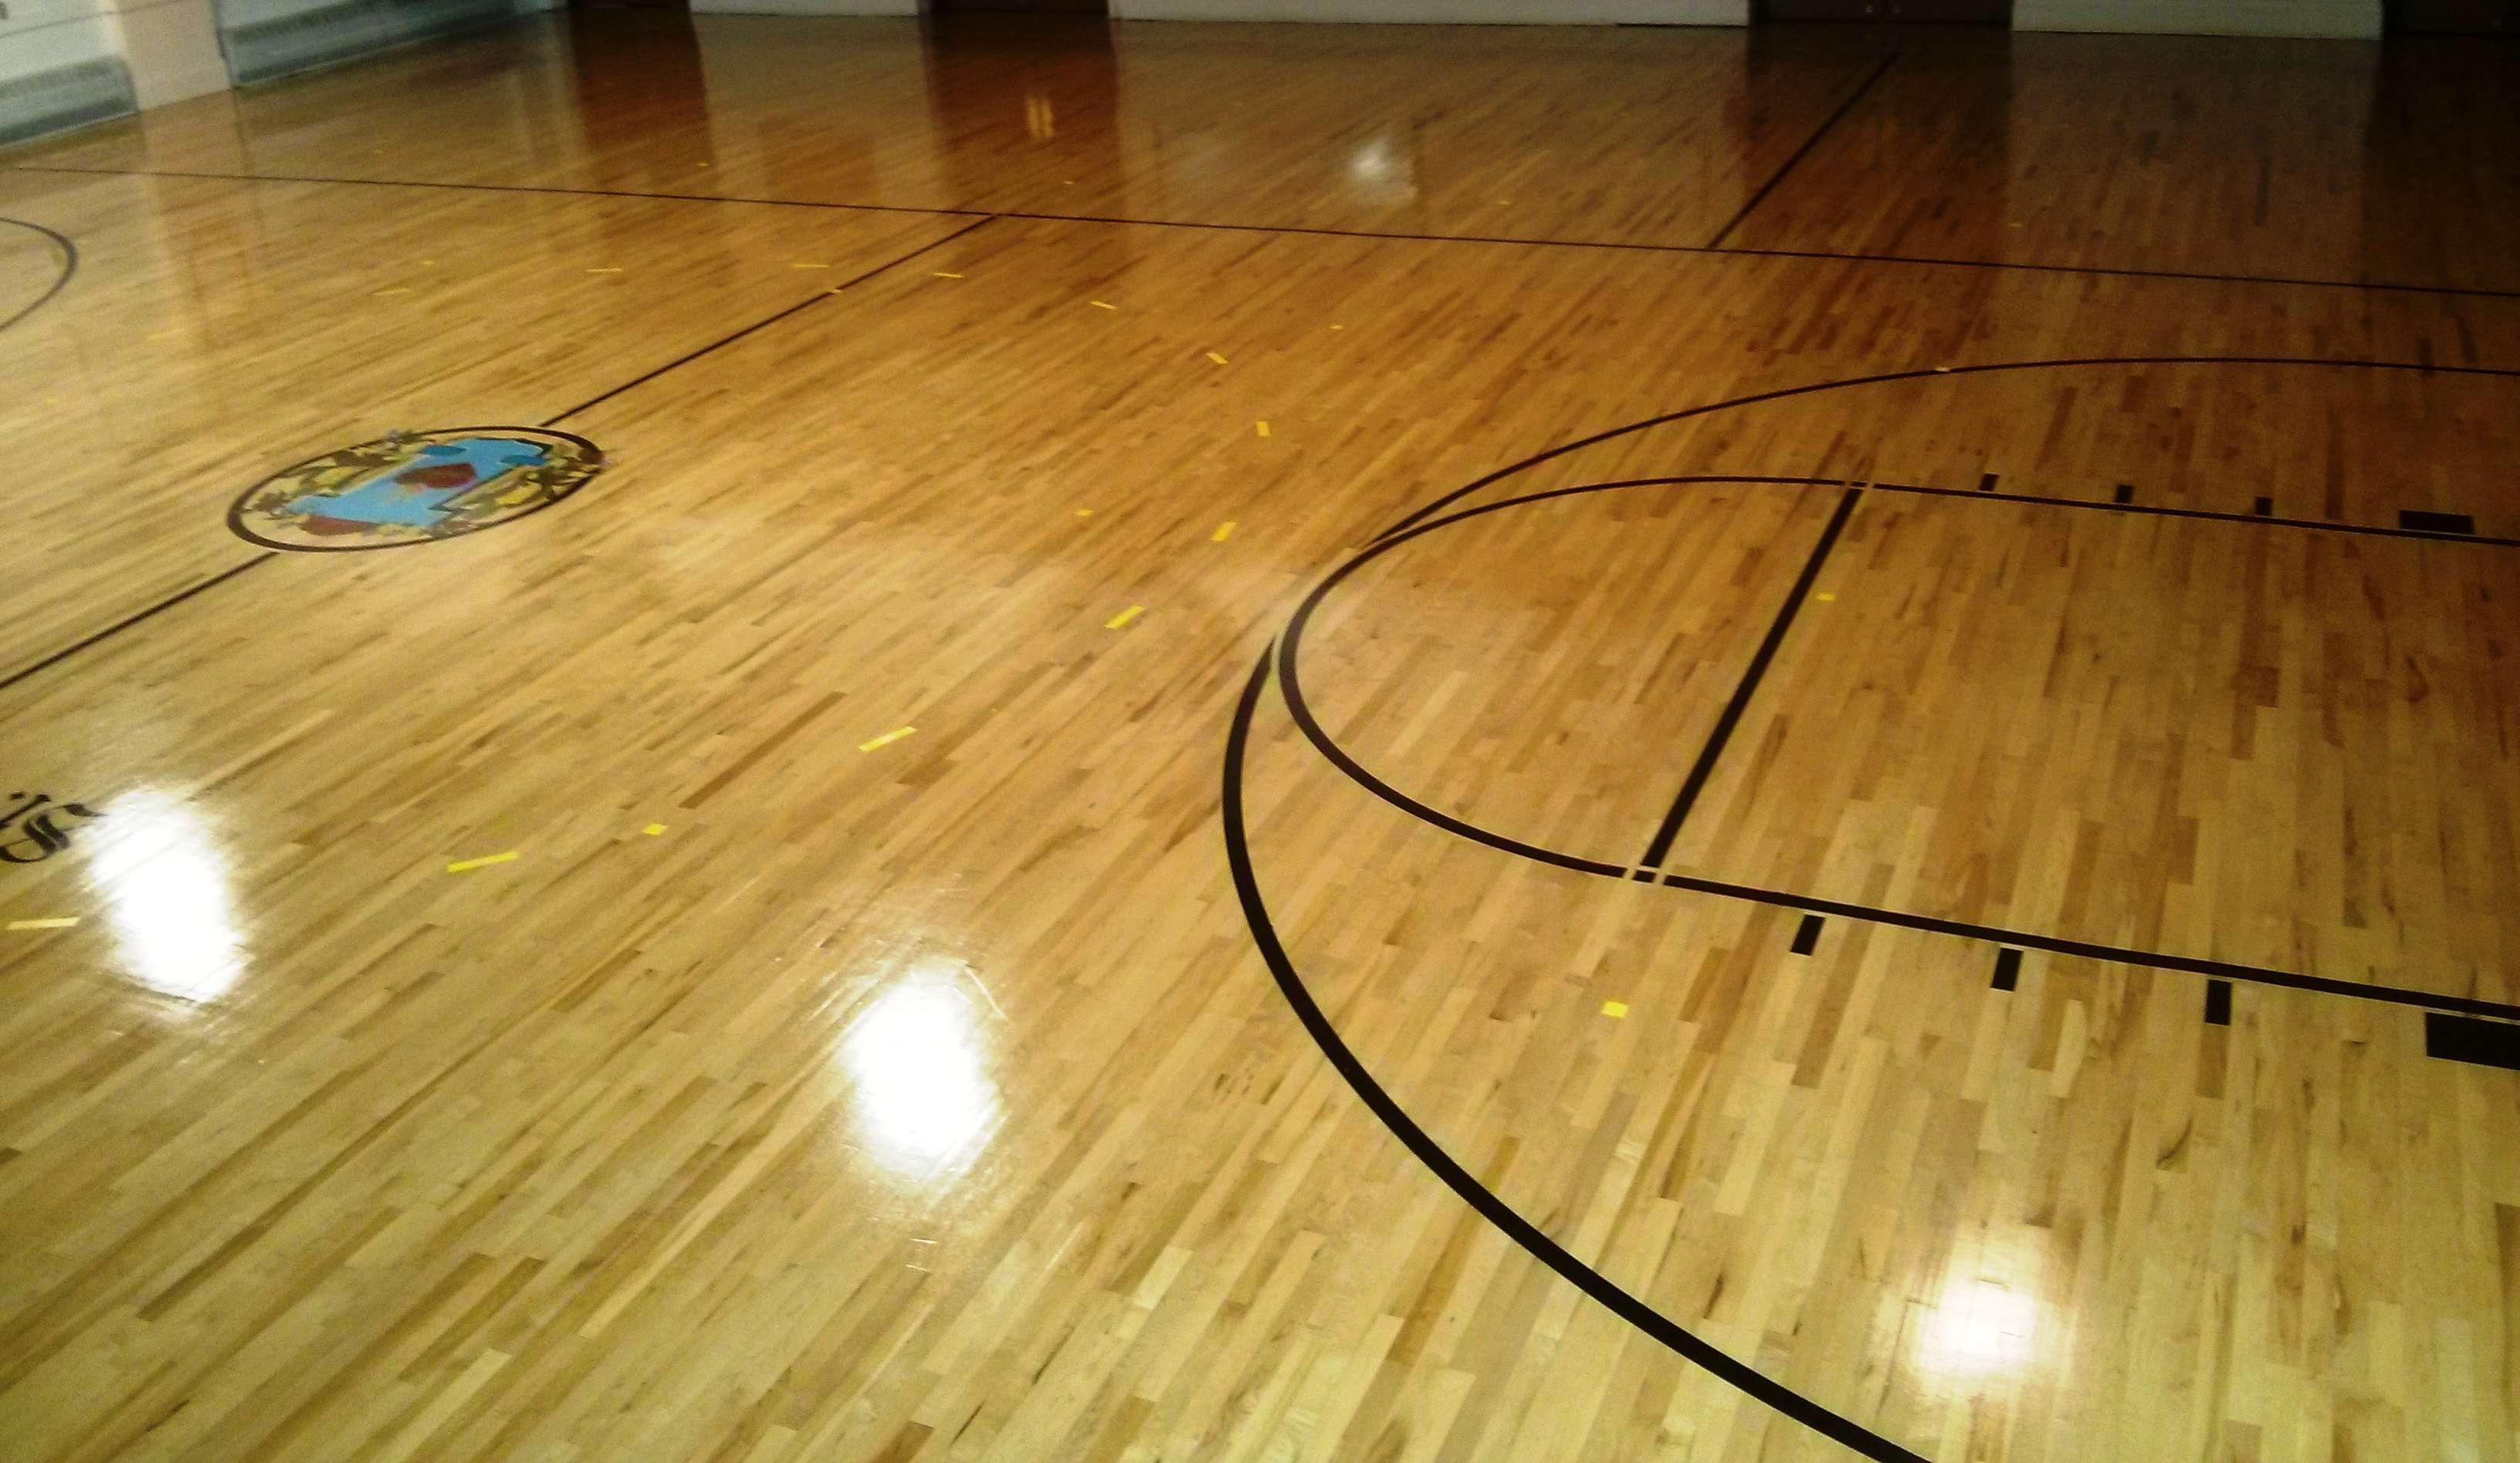 the at mecca basketball cellular art as life to exhibit floor one post wuwm back night bounces for only court u floors be shown arena s will